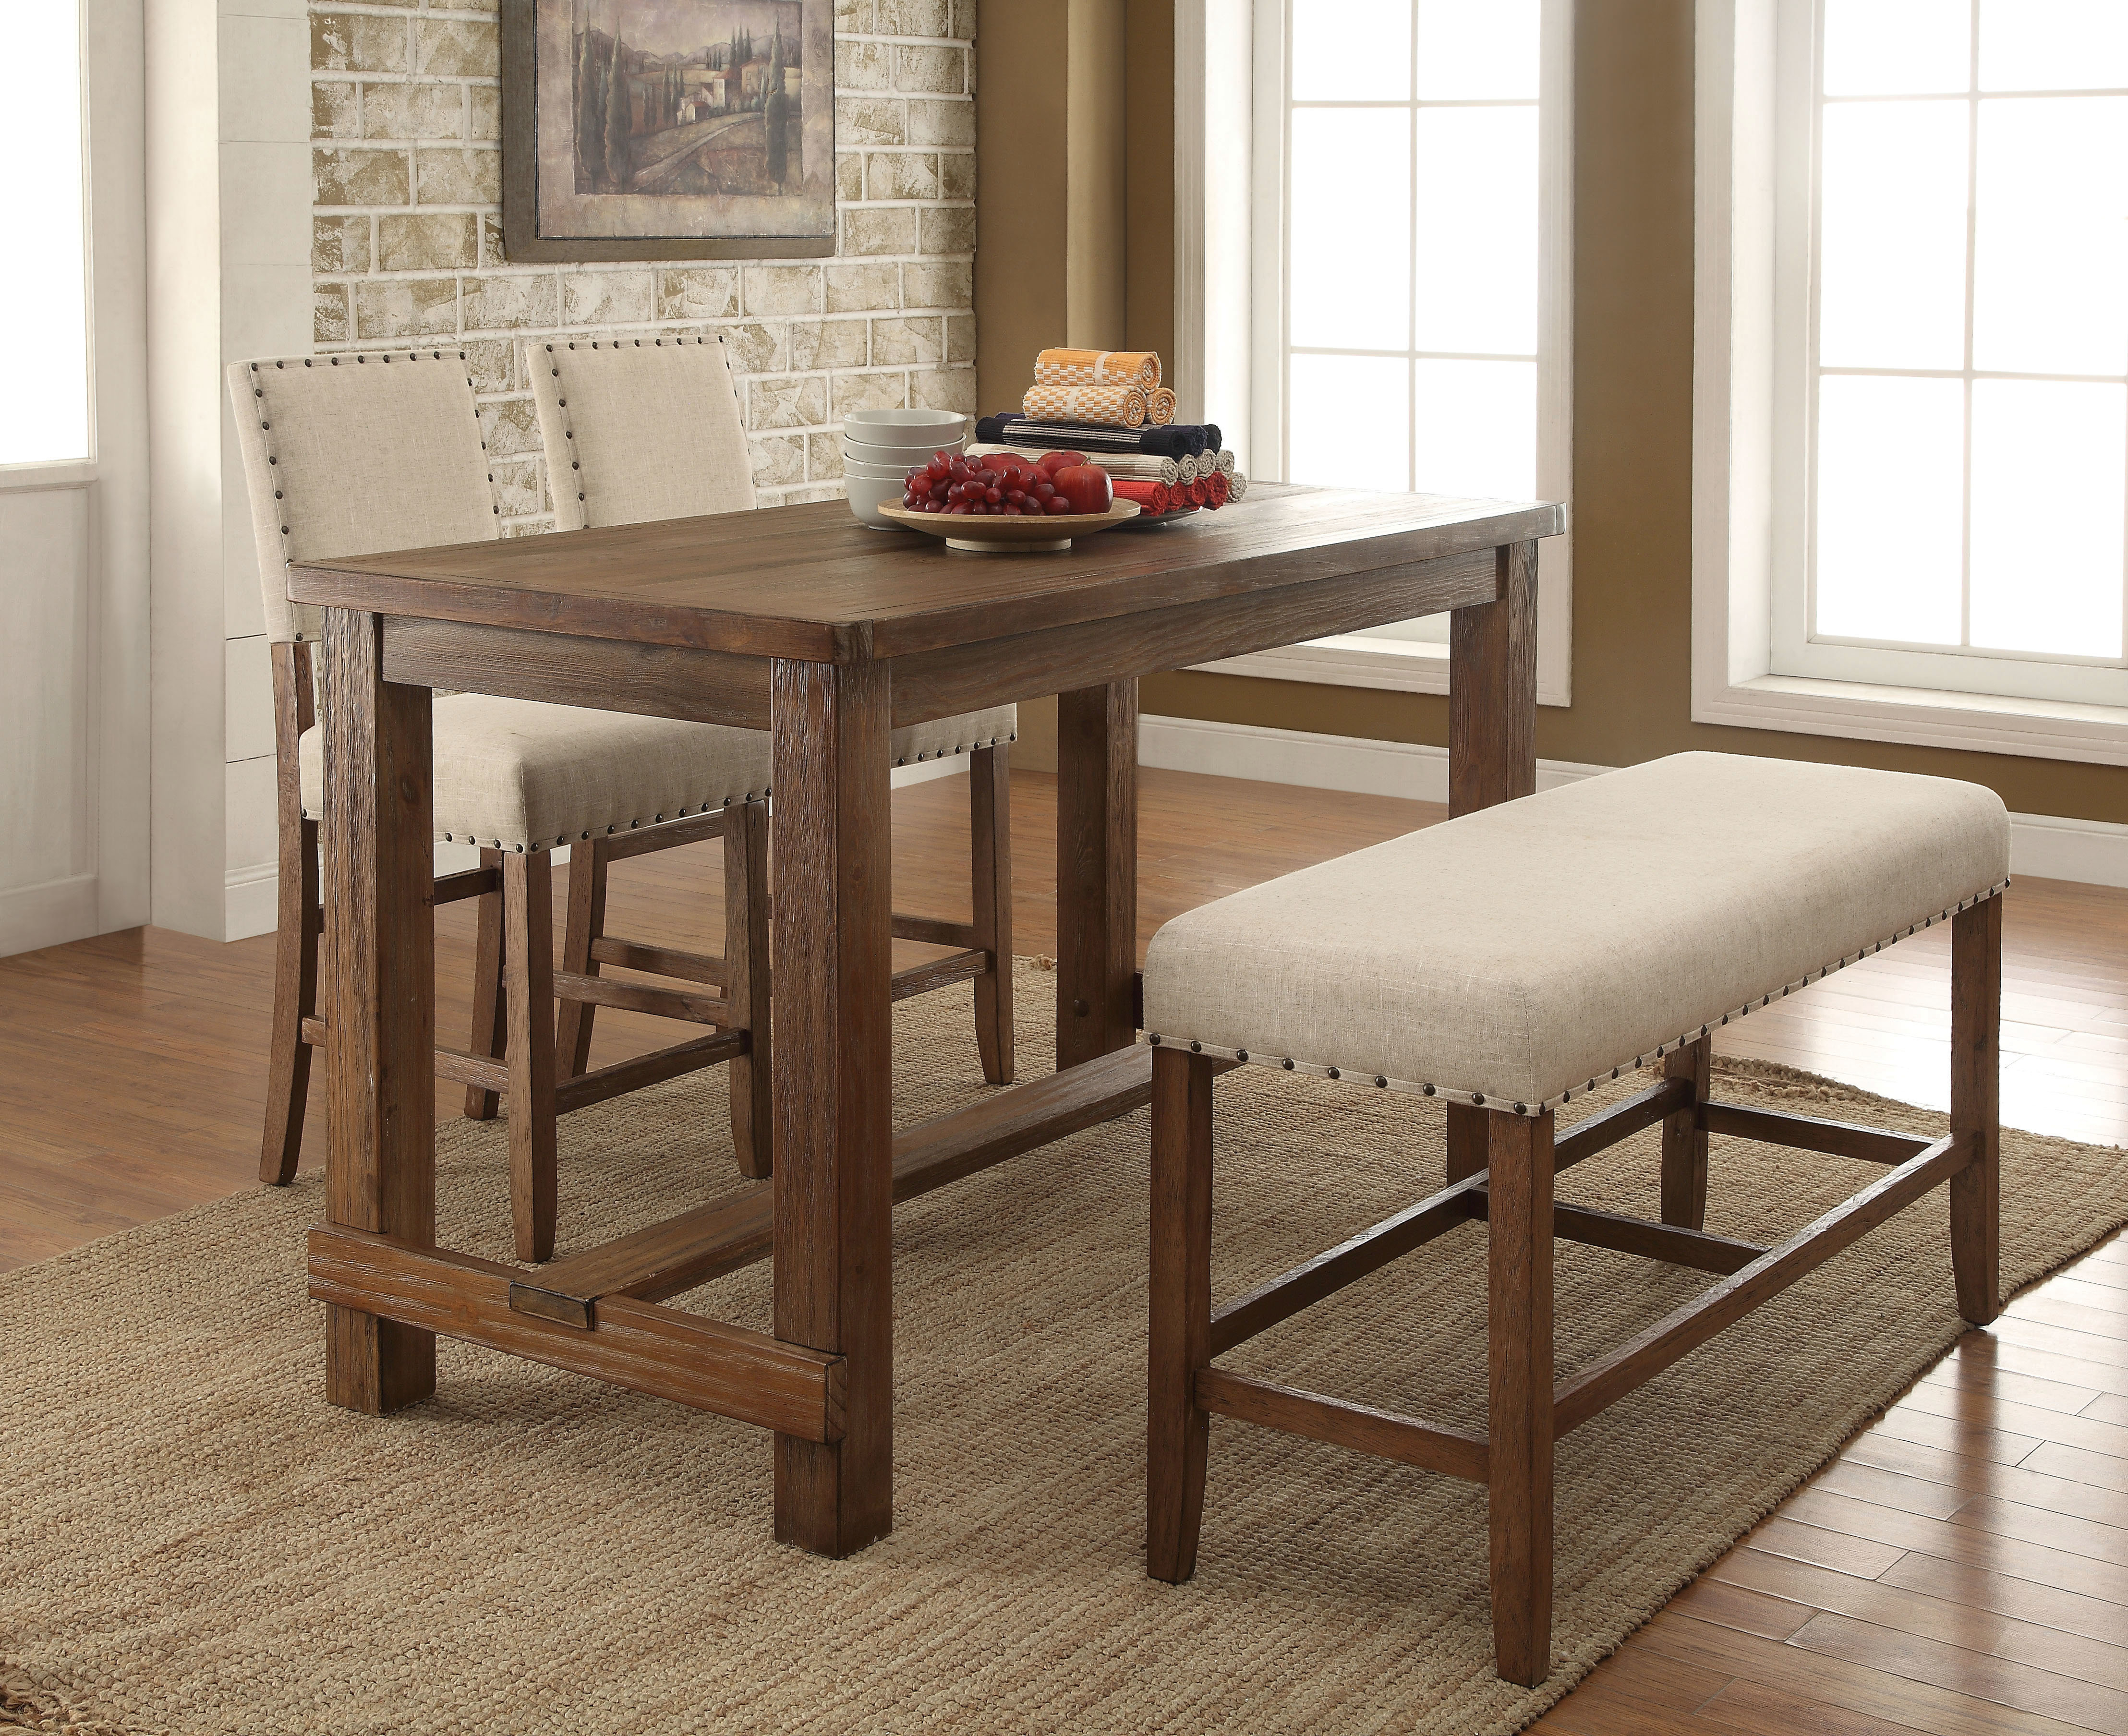 Orth 4 Piece Dining Set Regarding 2017 Queener 5 Piece Dining Sets (View 2 of 20)